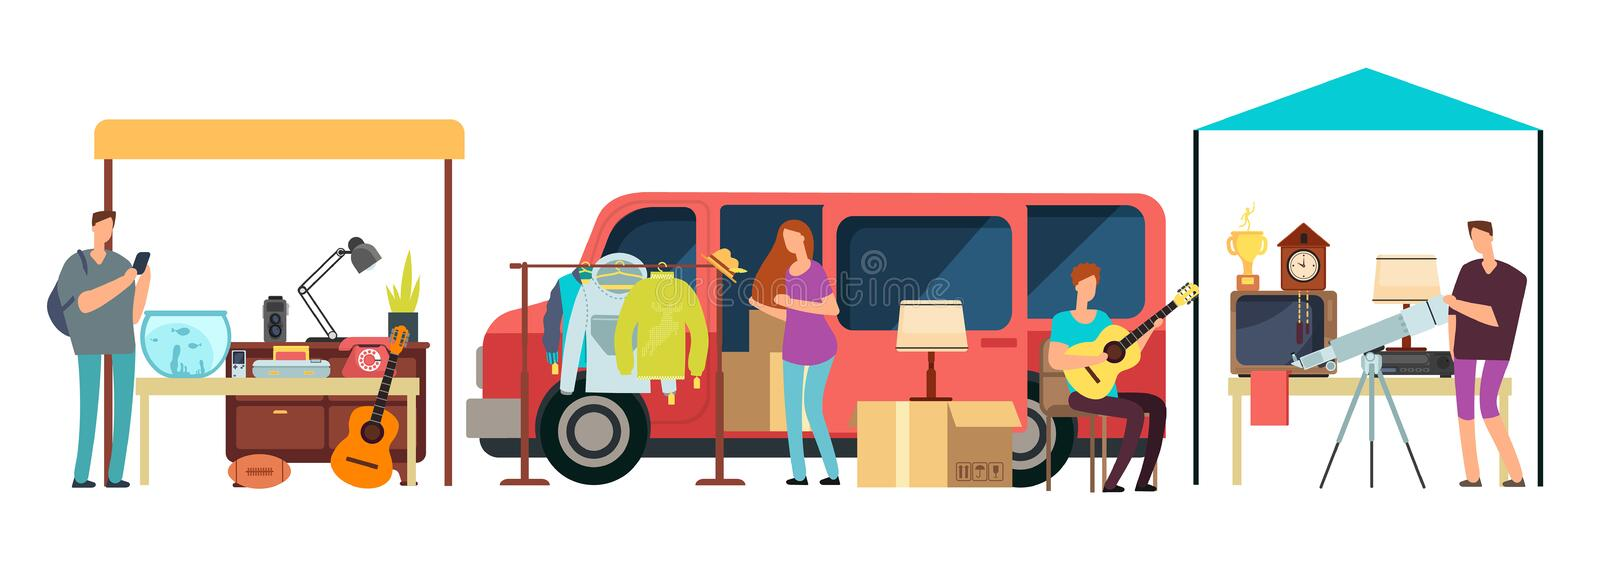 People selling, shopping second hand clothes, vintage goods in mini tracks at flea market. Bazaar with retro things stock illustration